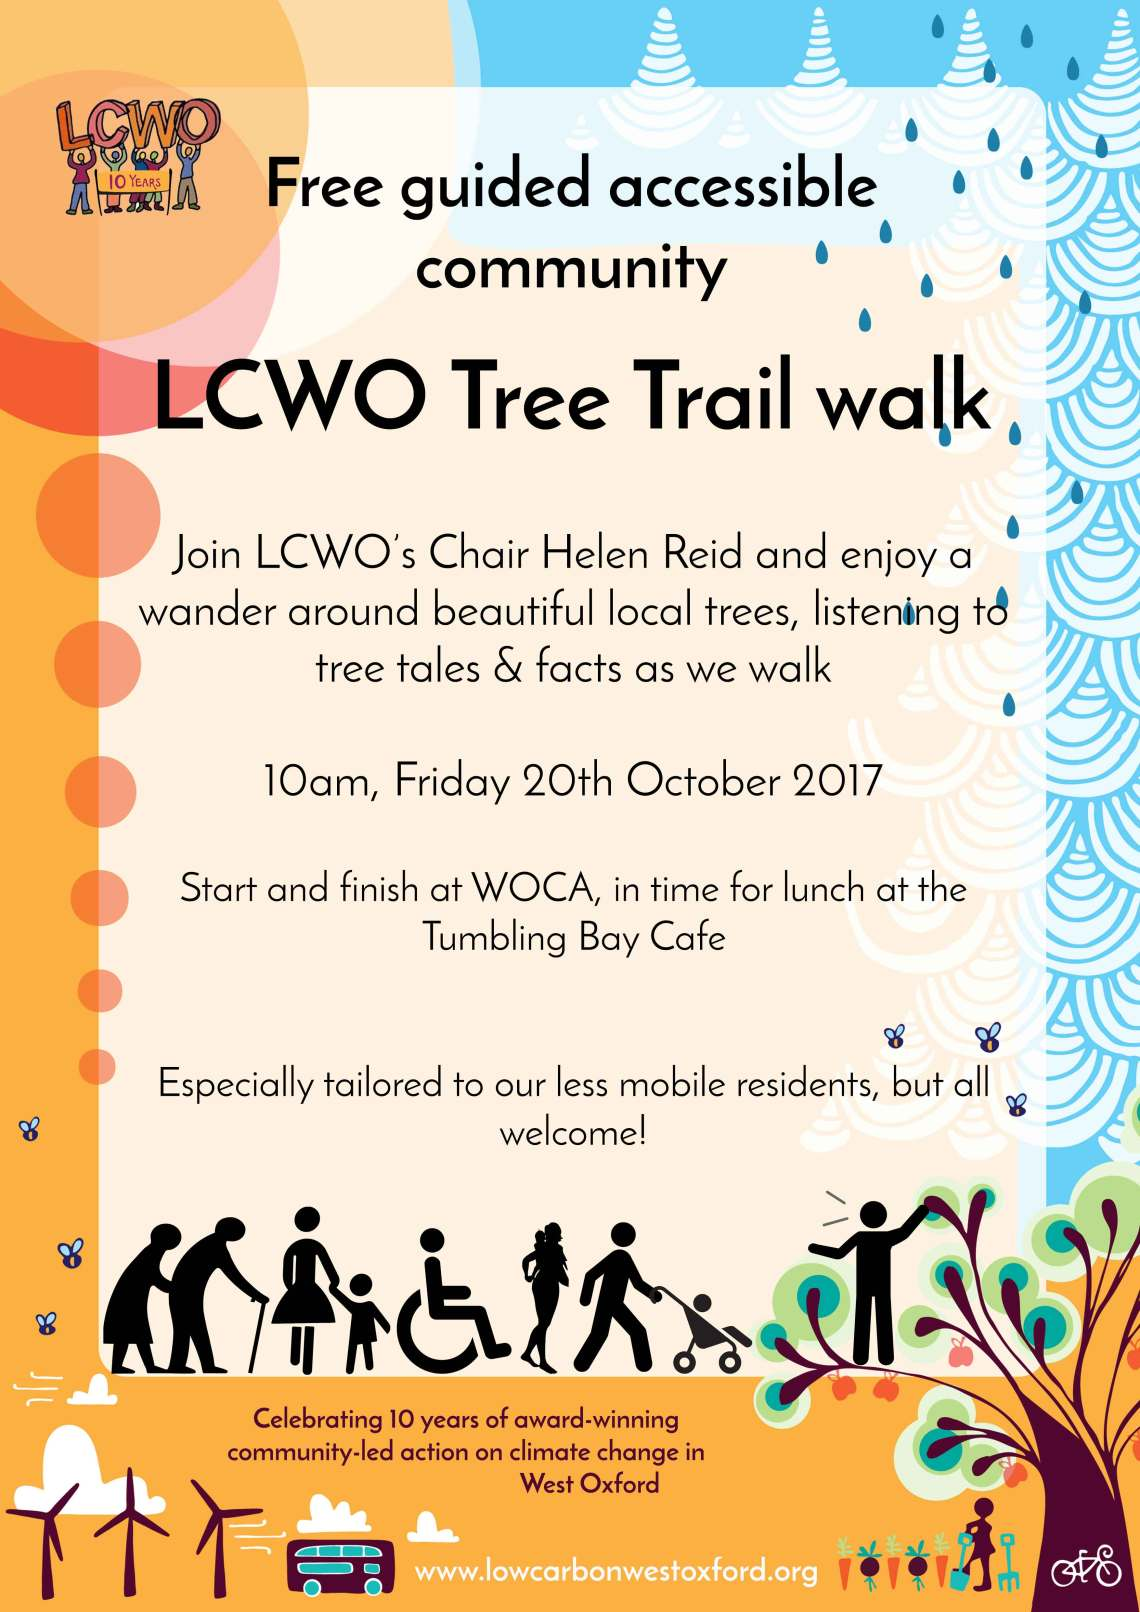 Free guided accessible Tree Trail walk @ West Oxford Community Centre (WOCA)